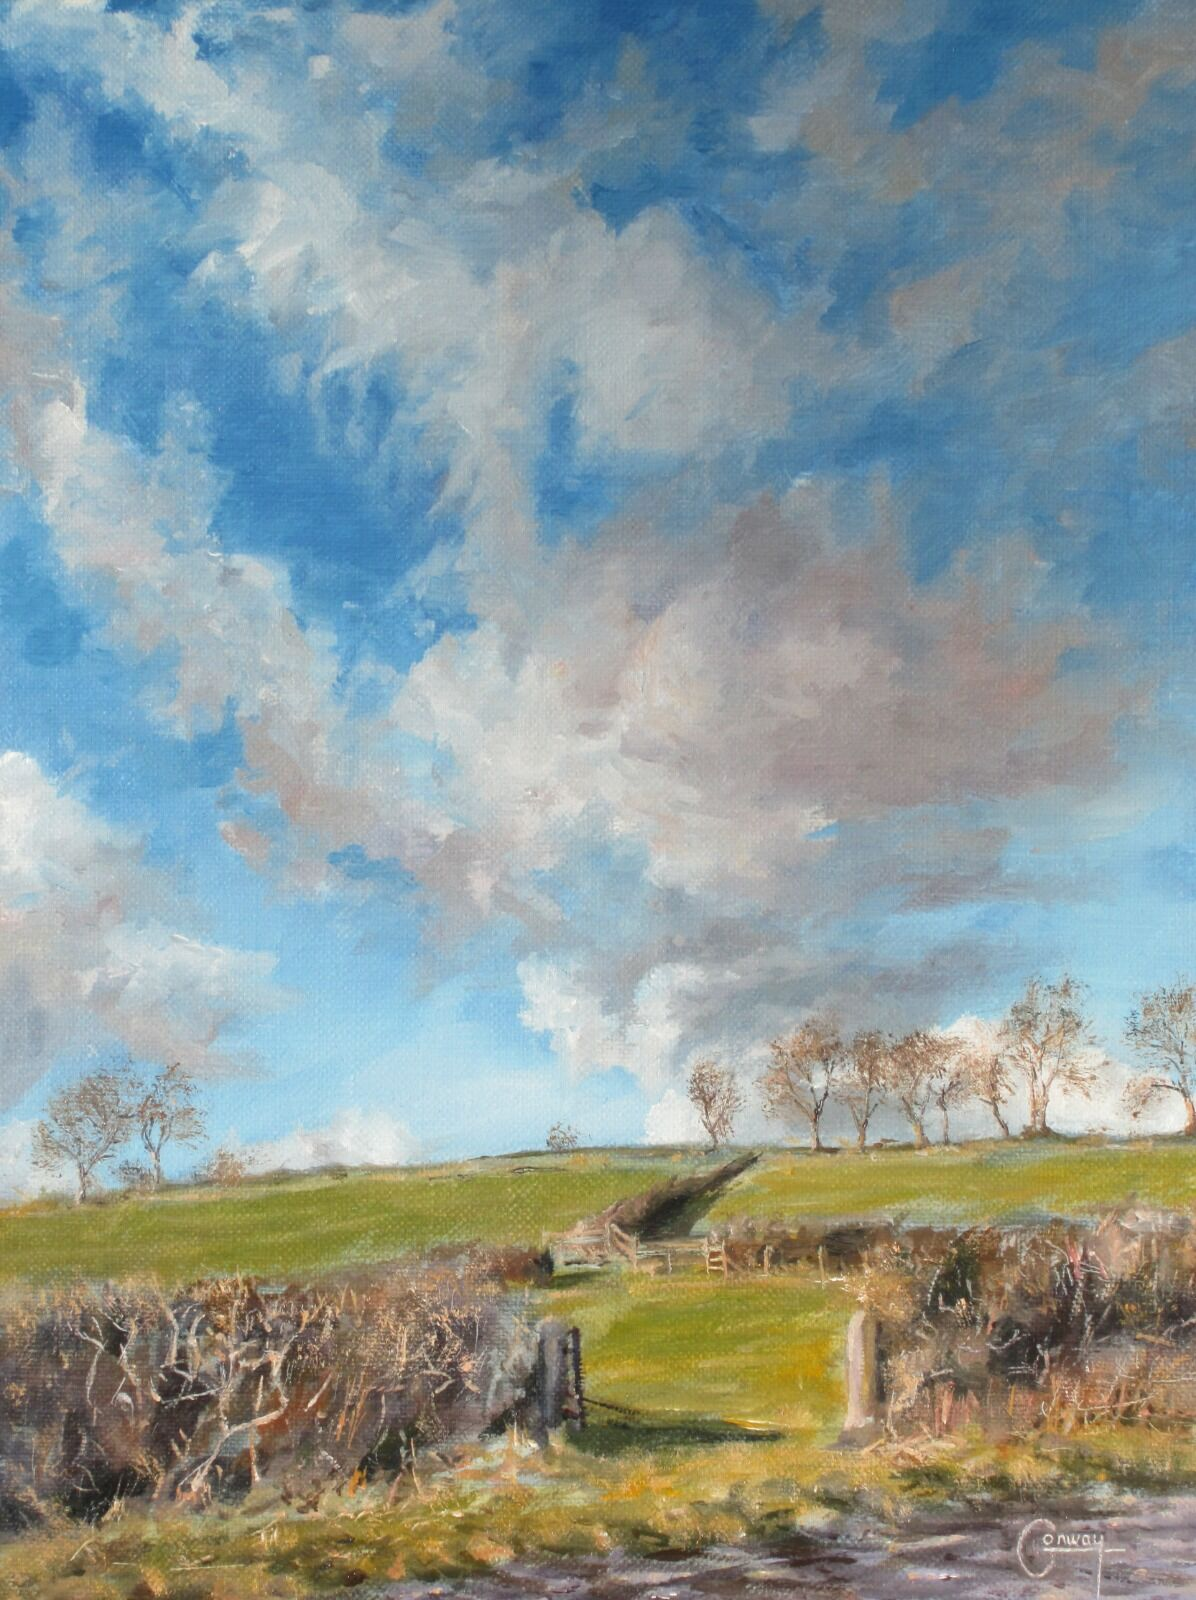 This painting 'Early Winter Cloudscape' intends to capture a fleeting moment of experience. What is it about realist painting that that allows it to stimulate deep connections with our memory?